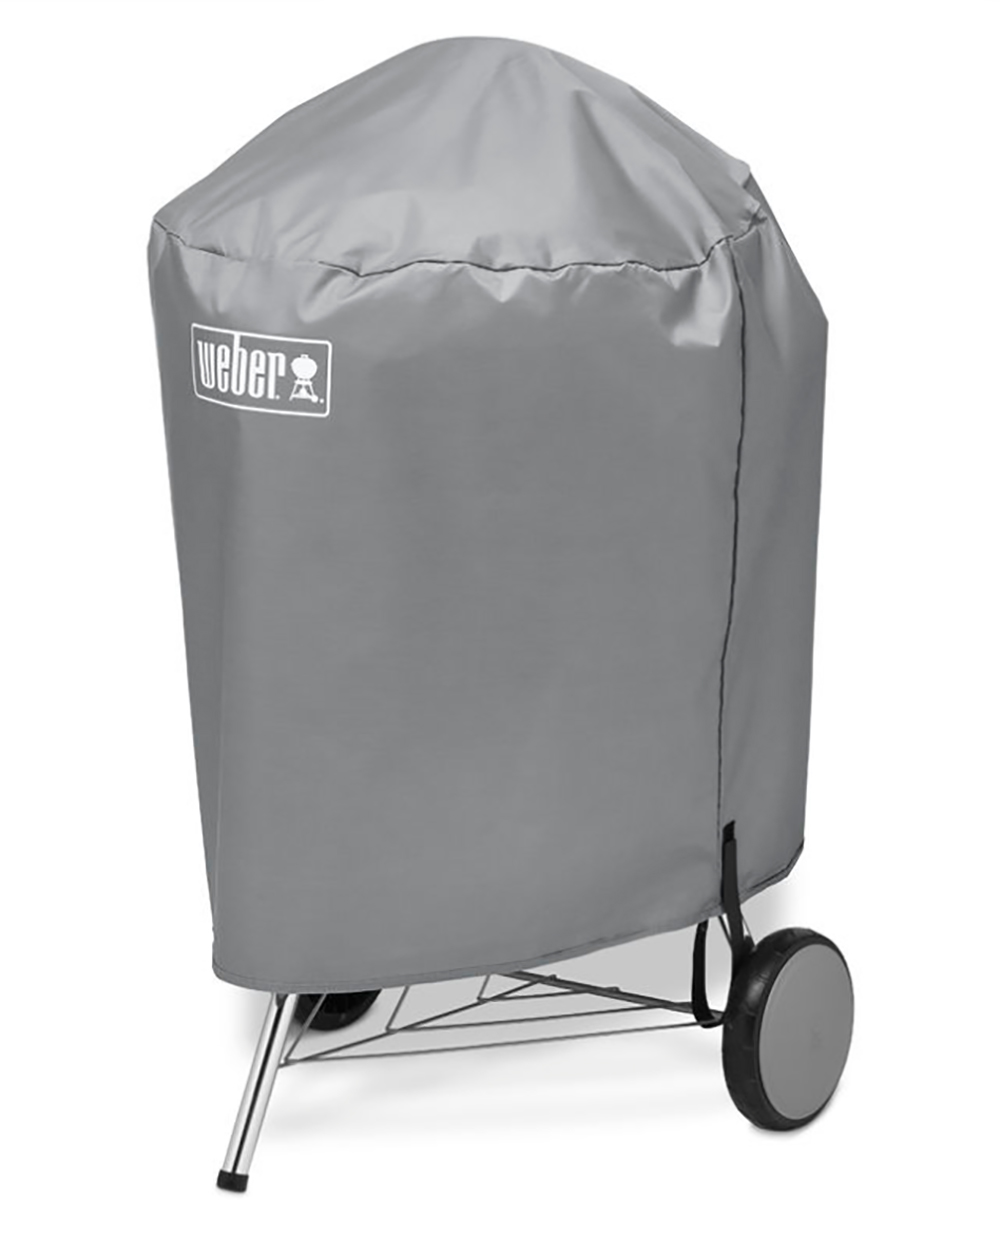 Weber Barbecue Cover Fits 57cm charcoal barbecues 7176